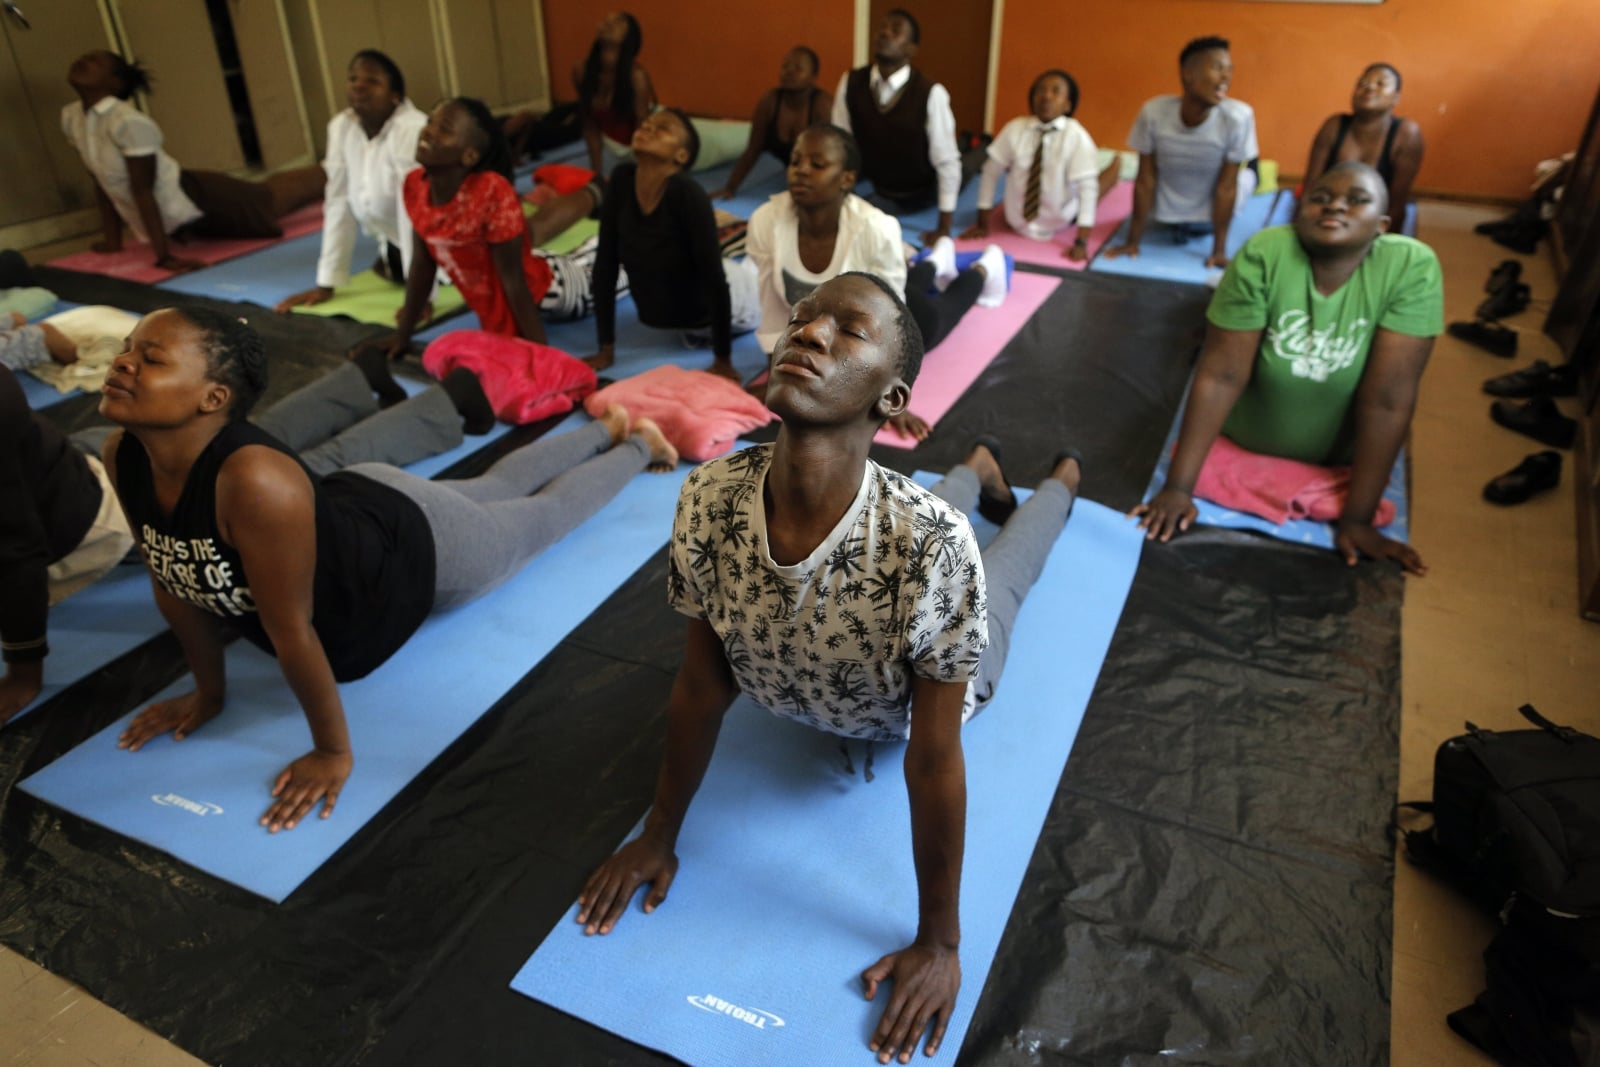 epa06503355 (05/25) School children at the Minerva Secondary School do 'upward facing dog' yoga pose during their afternoon yoga class taught by Yoga4Alex teachers in Alex Township, Johannesburg, South Africa, 01 November 2017. The NGO Yoga4Alex is bringing the ancient India spiritual practice of Kundalini Yoga to the school children of this impoverished area of the city. The aim of Yoga4Alex is to ultimately help the learners reach their personal goals and their full potential by bringing stability into their lives.  Alexandra township or 'Alex' as it is known to dwellers in the urban living area - is one of the main townships on the edges of the capital and was built in the early 1900s to house non-white residents.  EPA/KIM LUDBROOK   ATTENTION: For the full PHOTO ESSAY text please see Advisory Notice epa06503350 Dostawca: PAP/EPA.